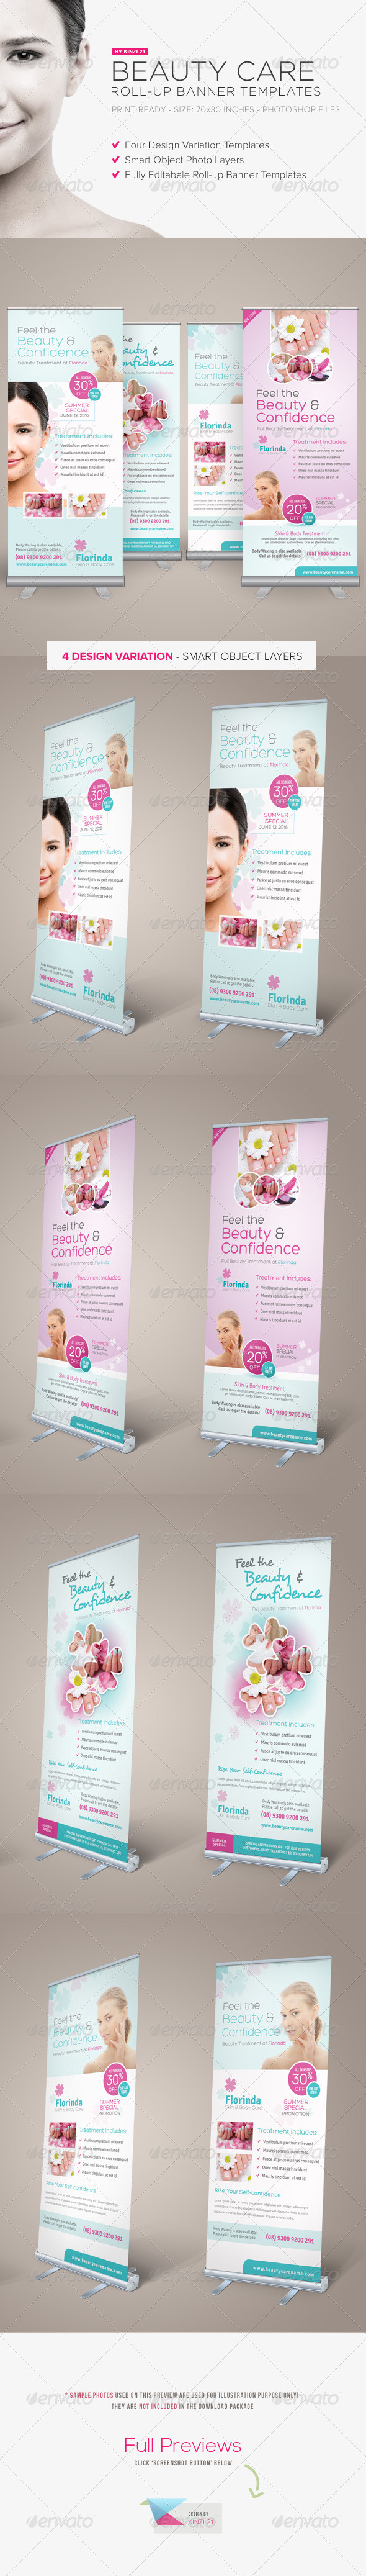 Beauty Care Roll-up Banners - Signage Print Templates